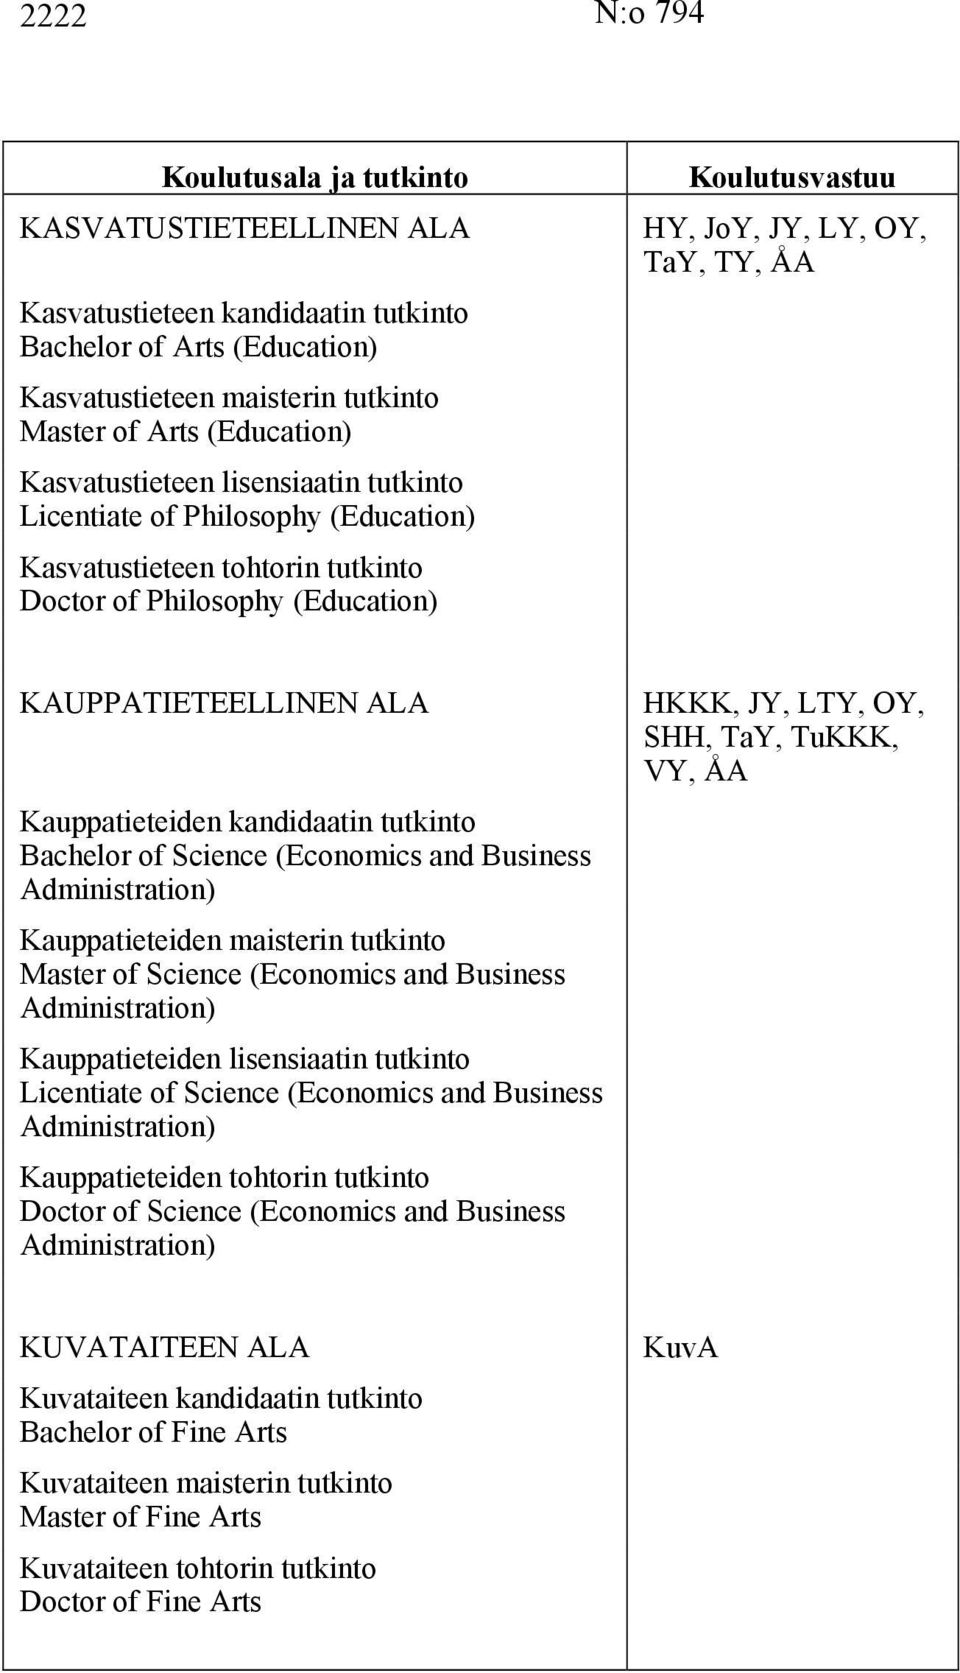 Bachelor of Science (Economics and Business Administration) Kauppatieteiden maisterin tutkinto Master of Science (Economics and Business Administration) Kauppatieteiden lisensiaatin tutkinto